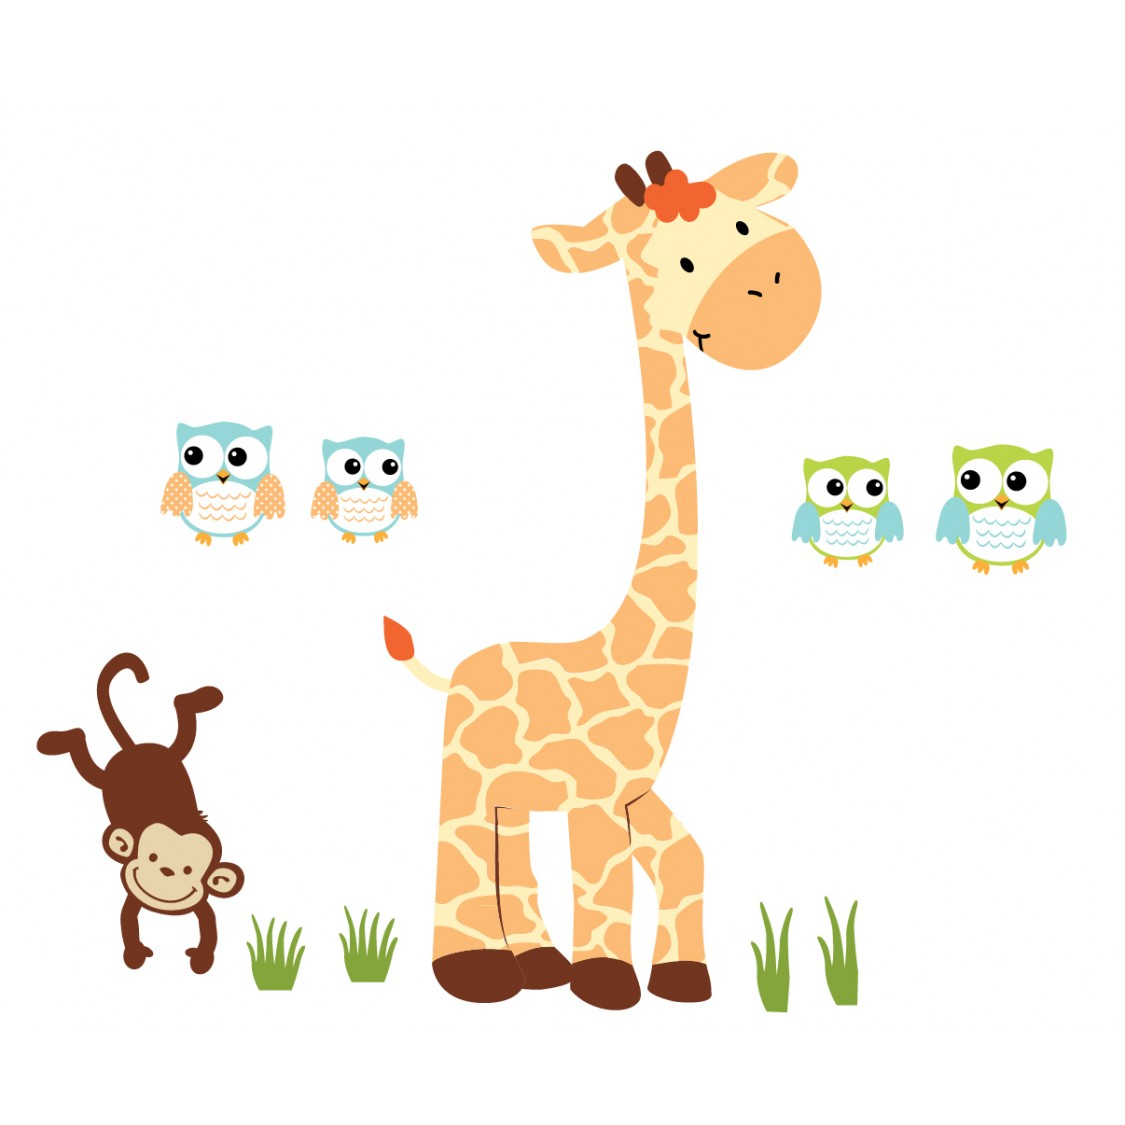 Elegant Giant Giraffe Wall Decor For Play Rooms